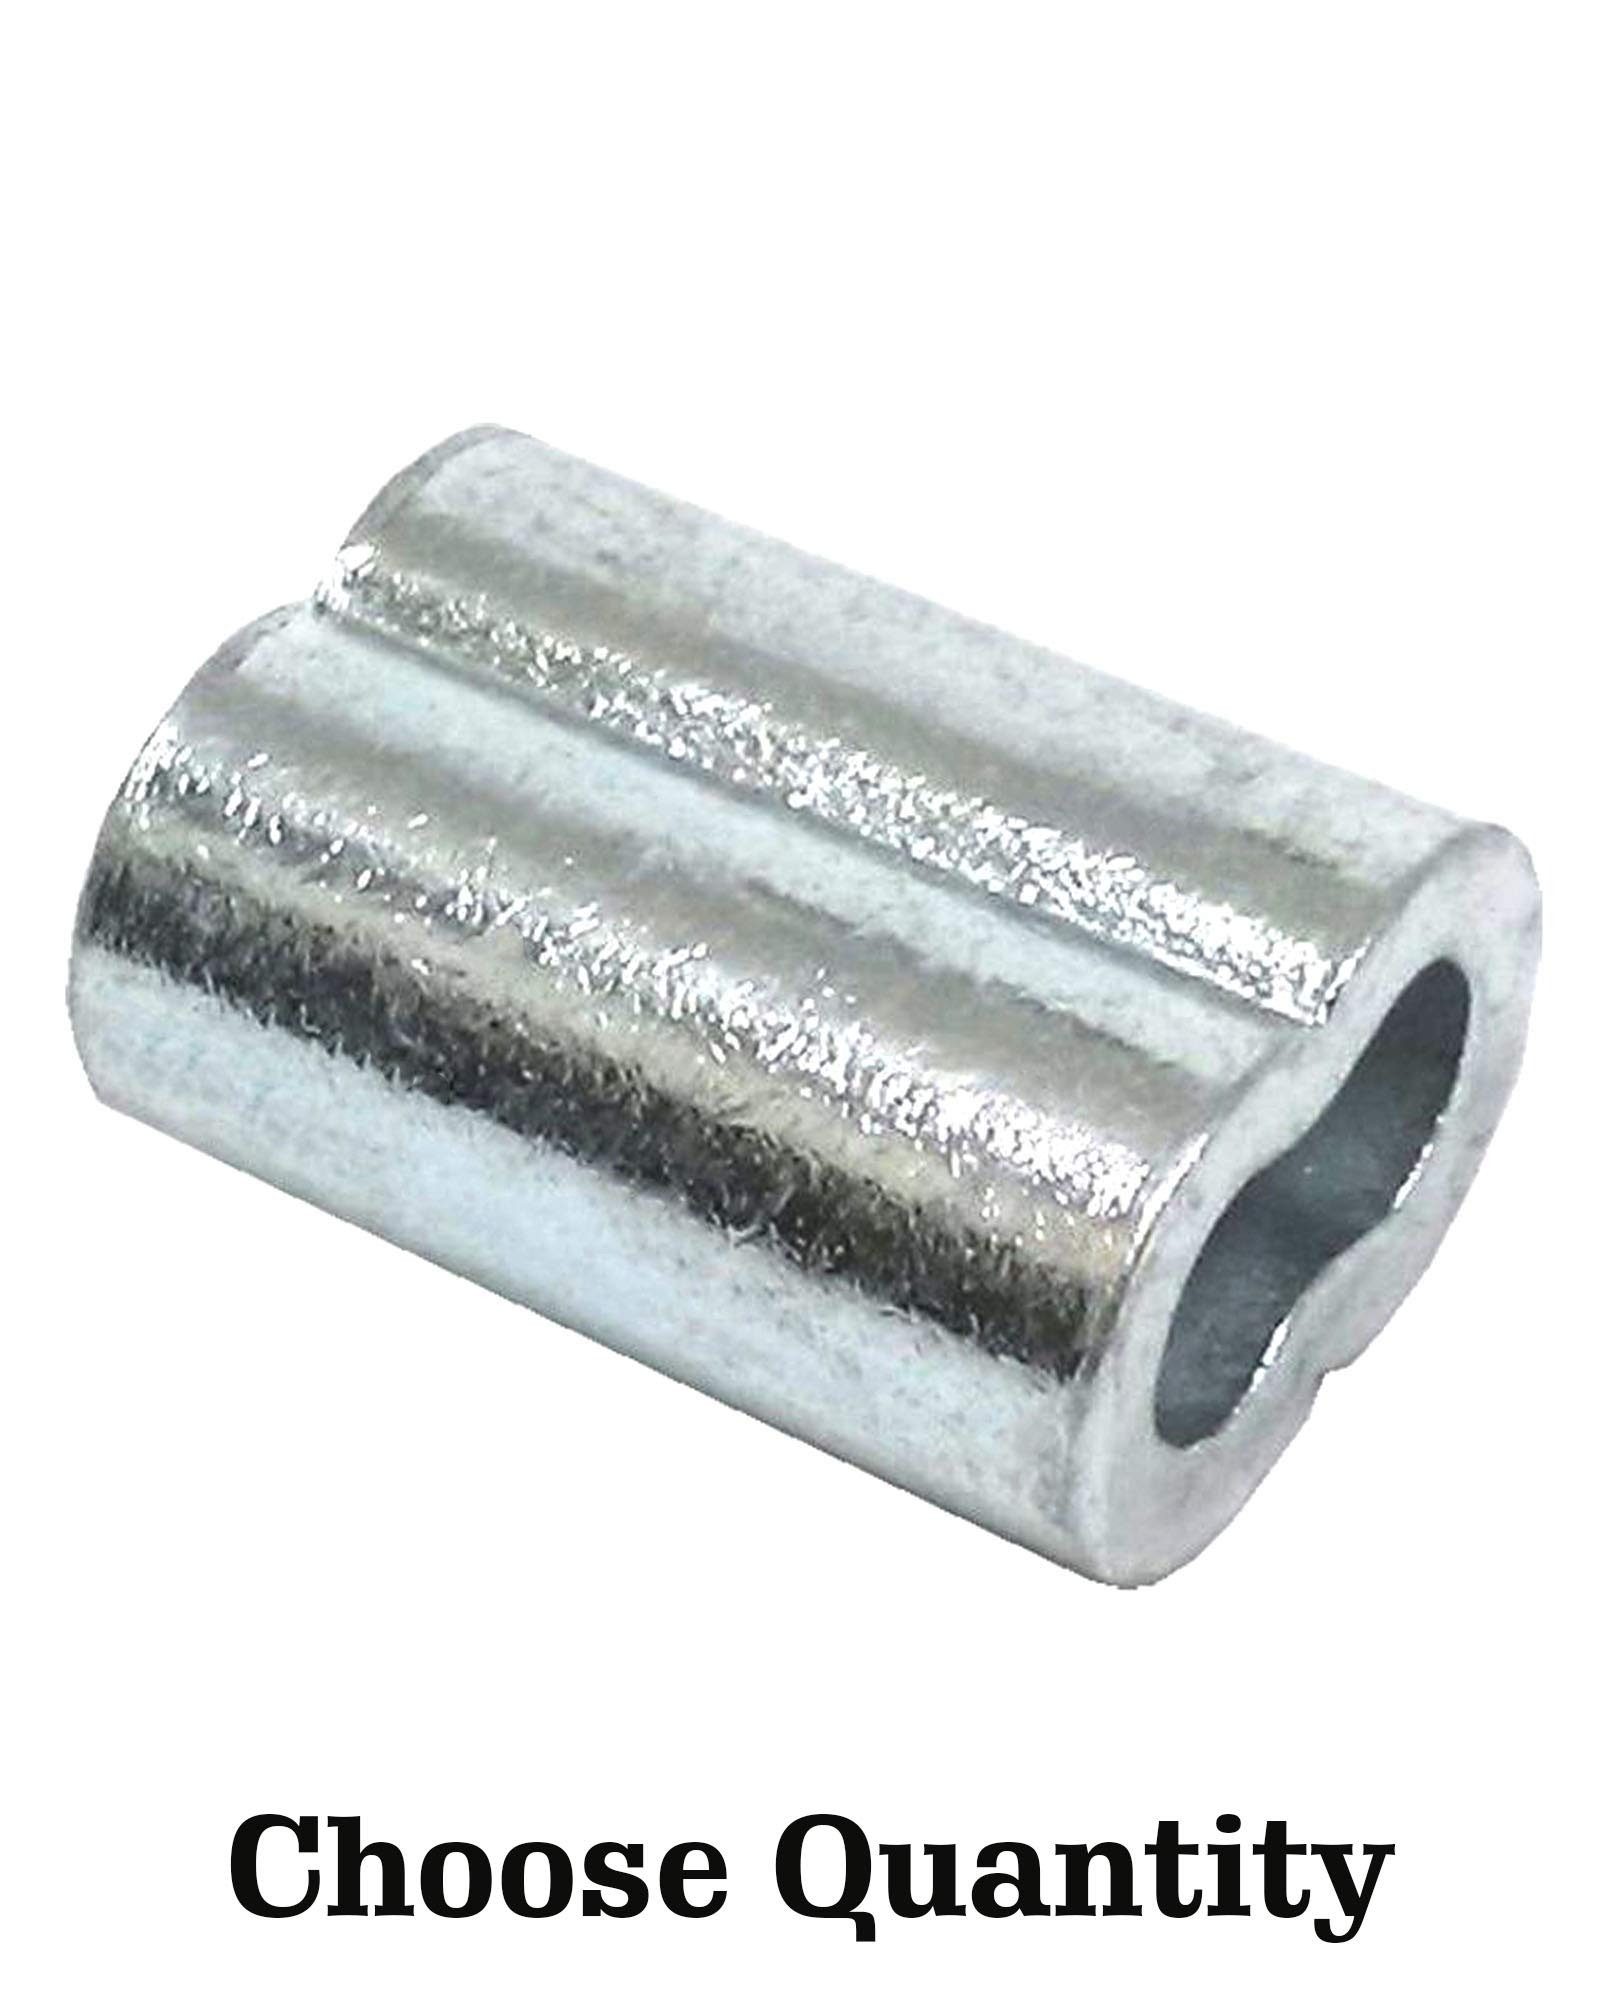 Zinc Plated Copper Swage Sleeves - Crimping Loop Sleeve for 3/32'' Diameter Wire Rope and Cable - Zinc Plated Copper Double Barrel Crimp Sleeves - Zinc Plated Copper Sleeves for Wire (50)